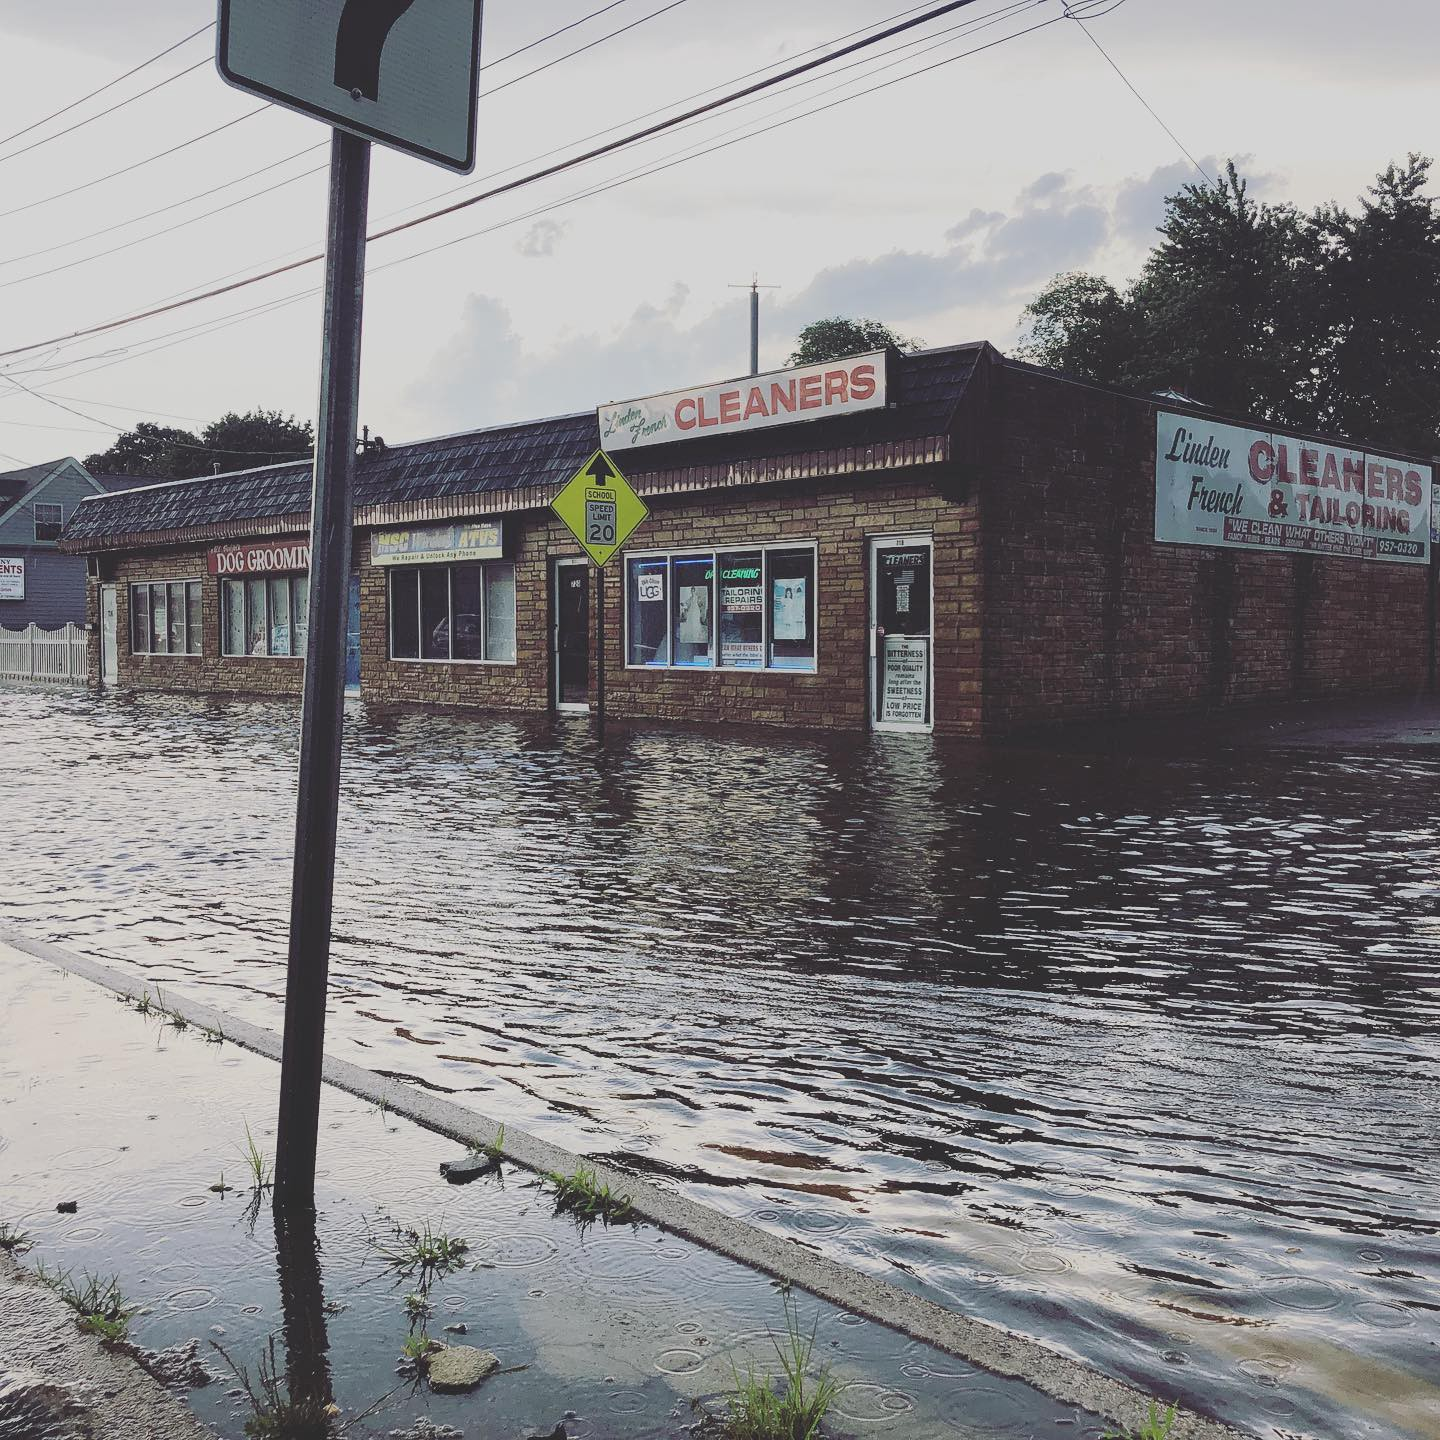 A stranded set of businesses on a main thoroughfare in North Lindenhurst, N.Y. caused by nuisance flooding in 2018. Image credit: Dan Horn